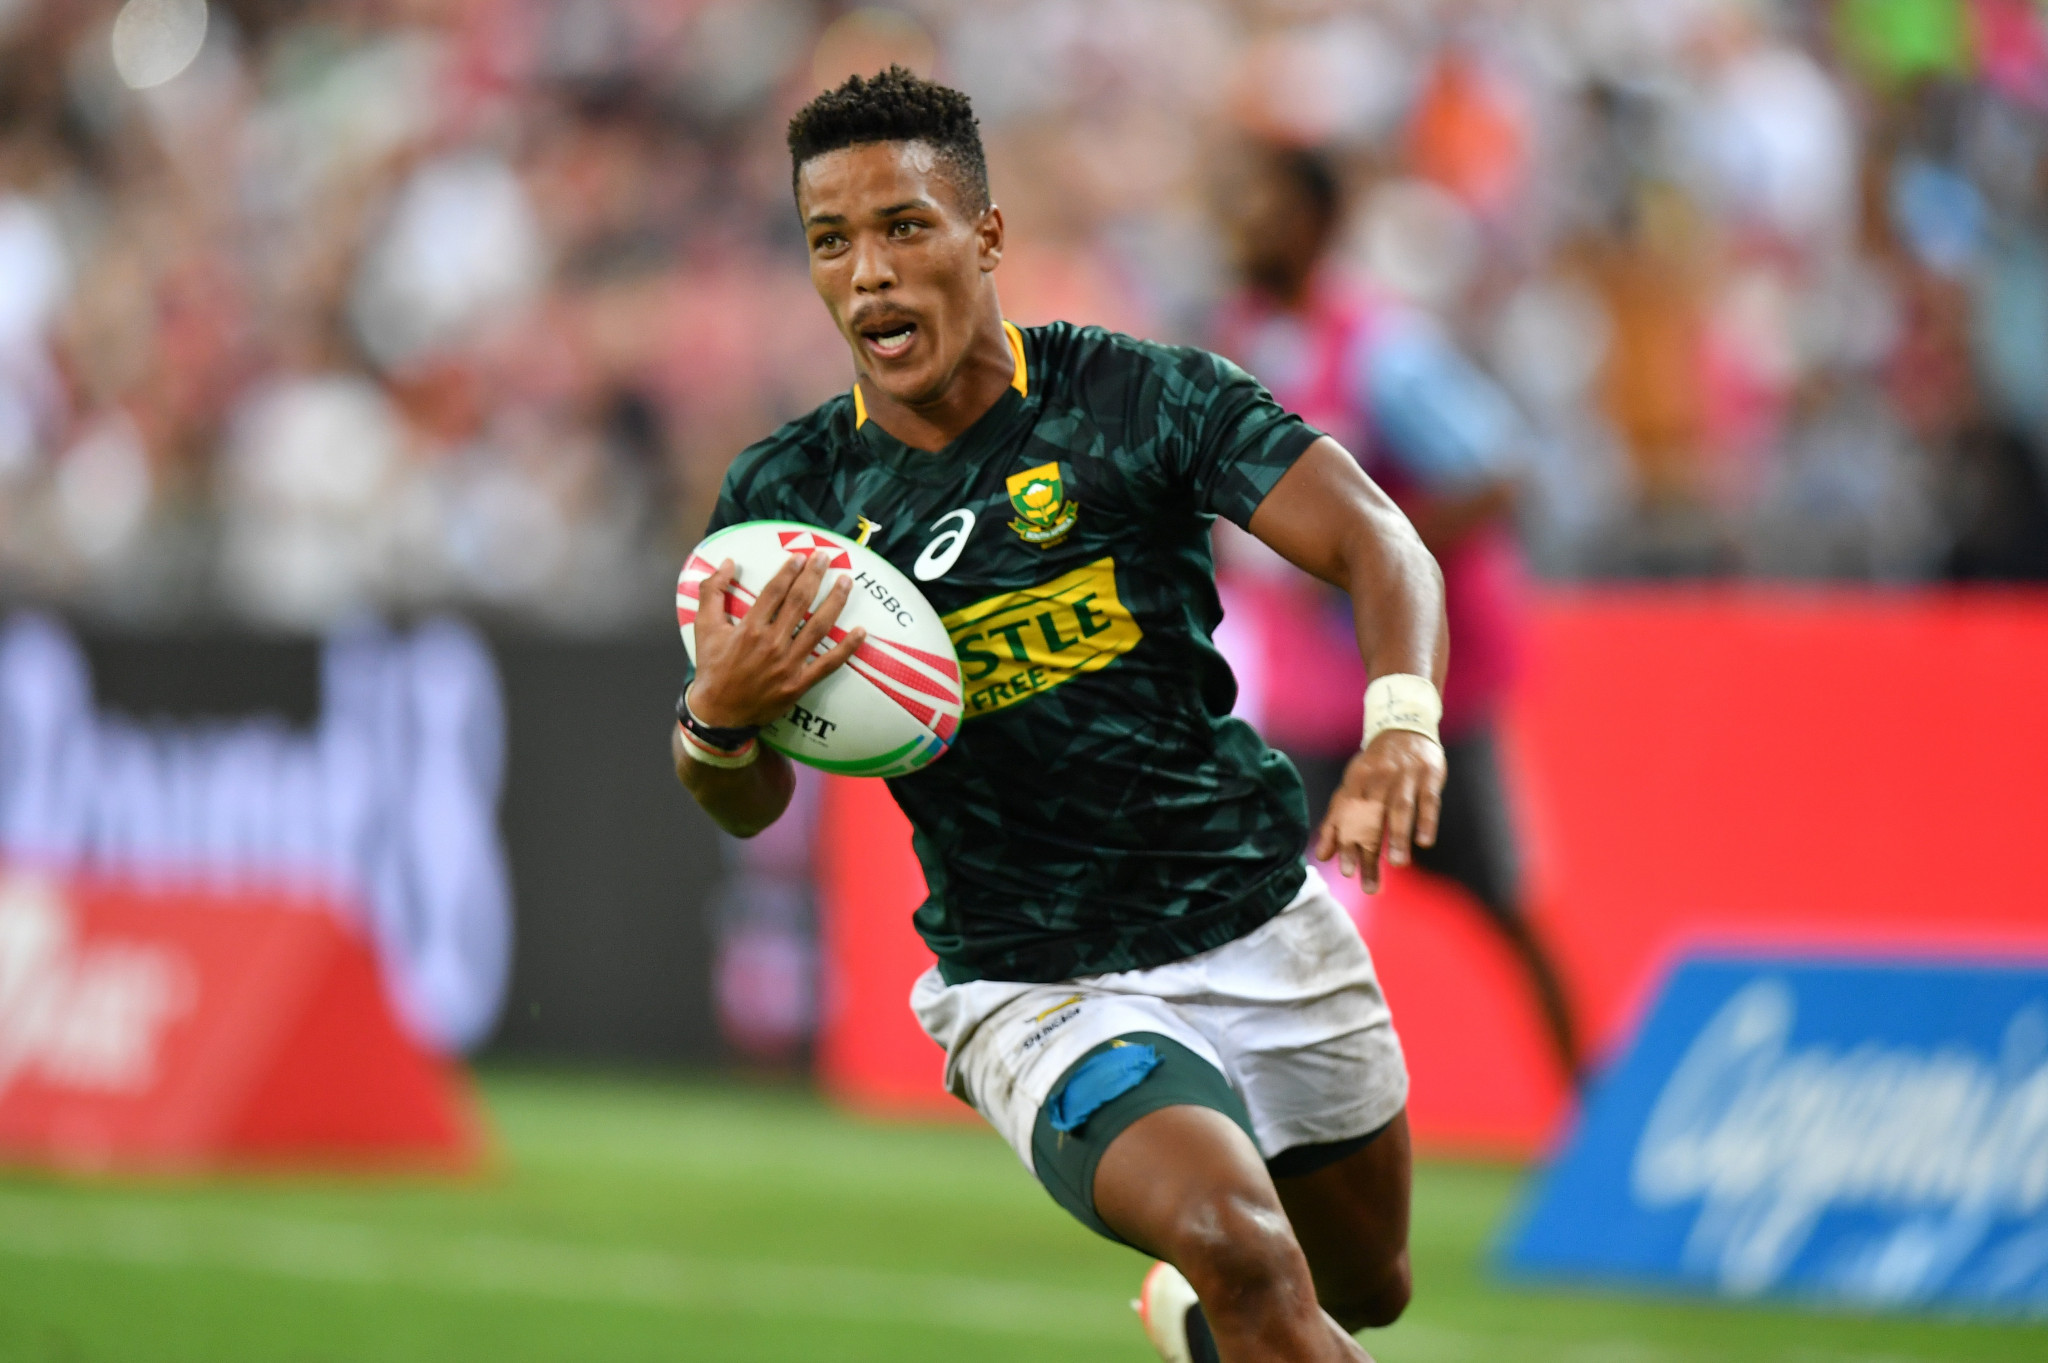 South Africa triumph on World Rugby Sevens Series return in Vancouver, while Britain win Fast Fours event